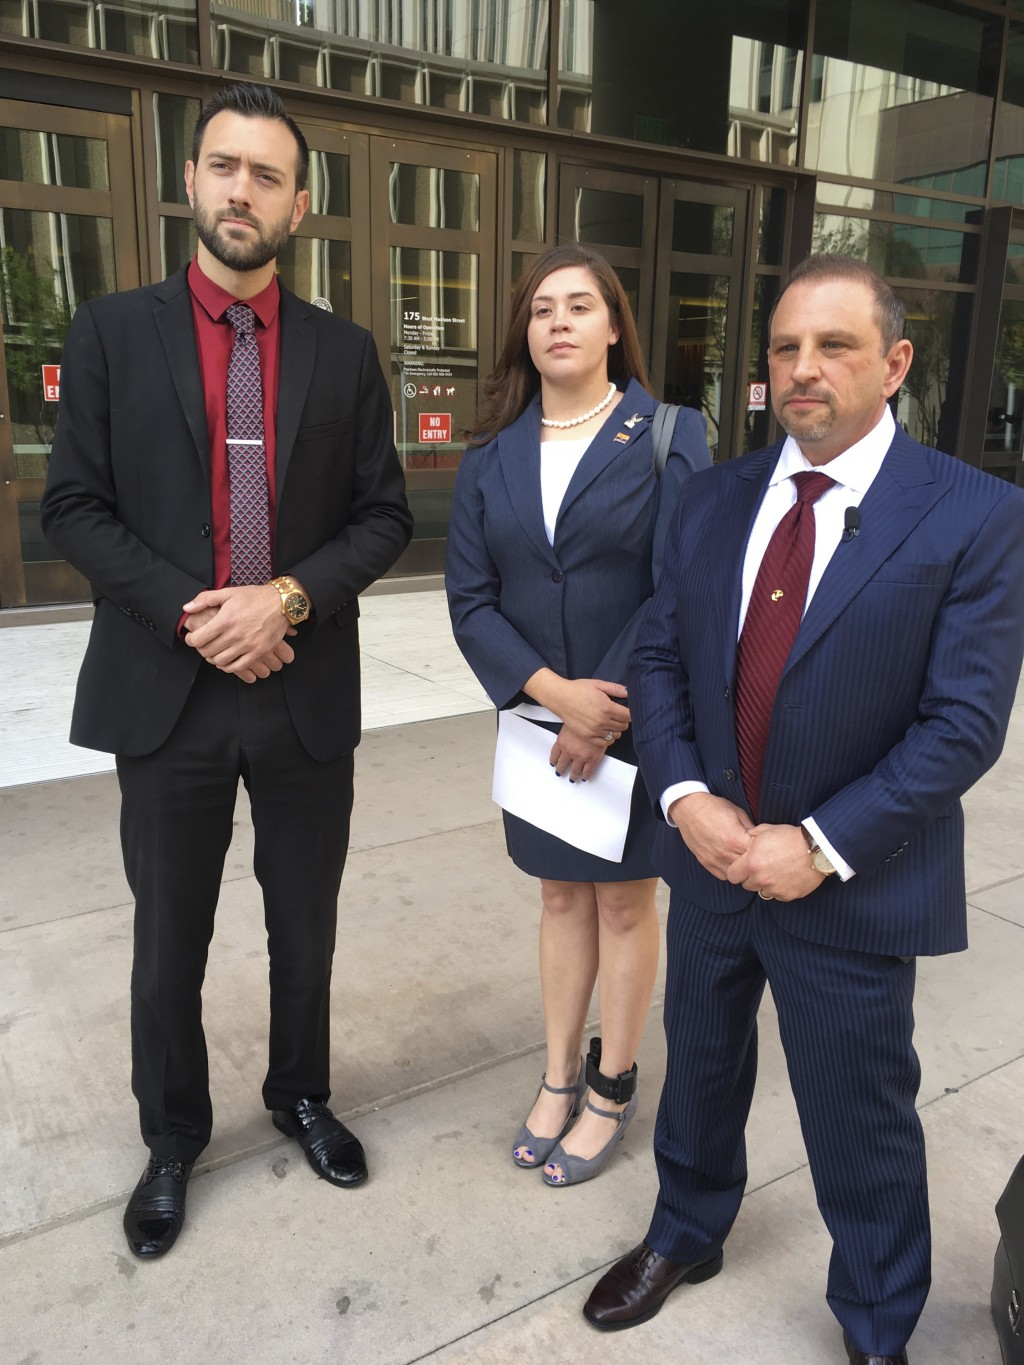 FILE - In this March 29, 2018 file photo, 32-year-old Tahnee Gonzales of Glendale, Arizona, stands next to her attorneys Marc Victor, right, and Andre